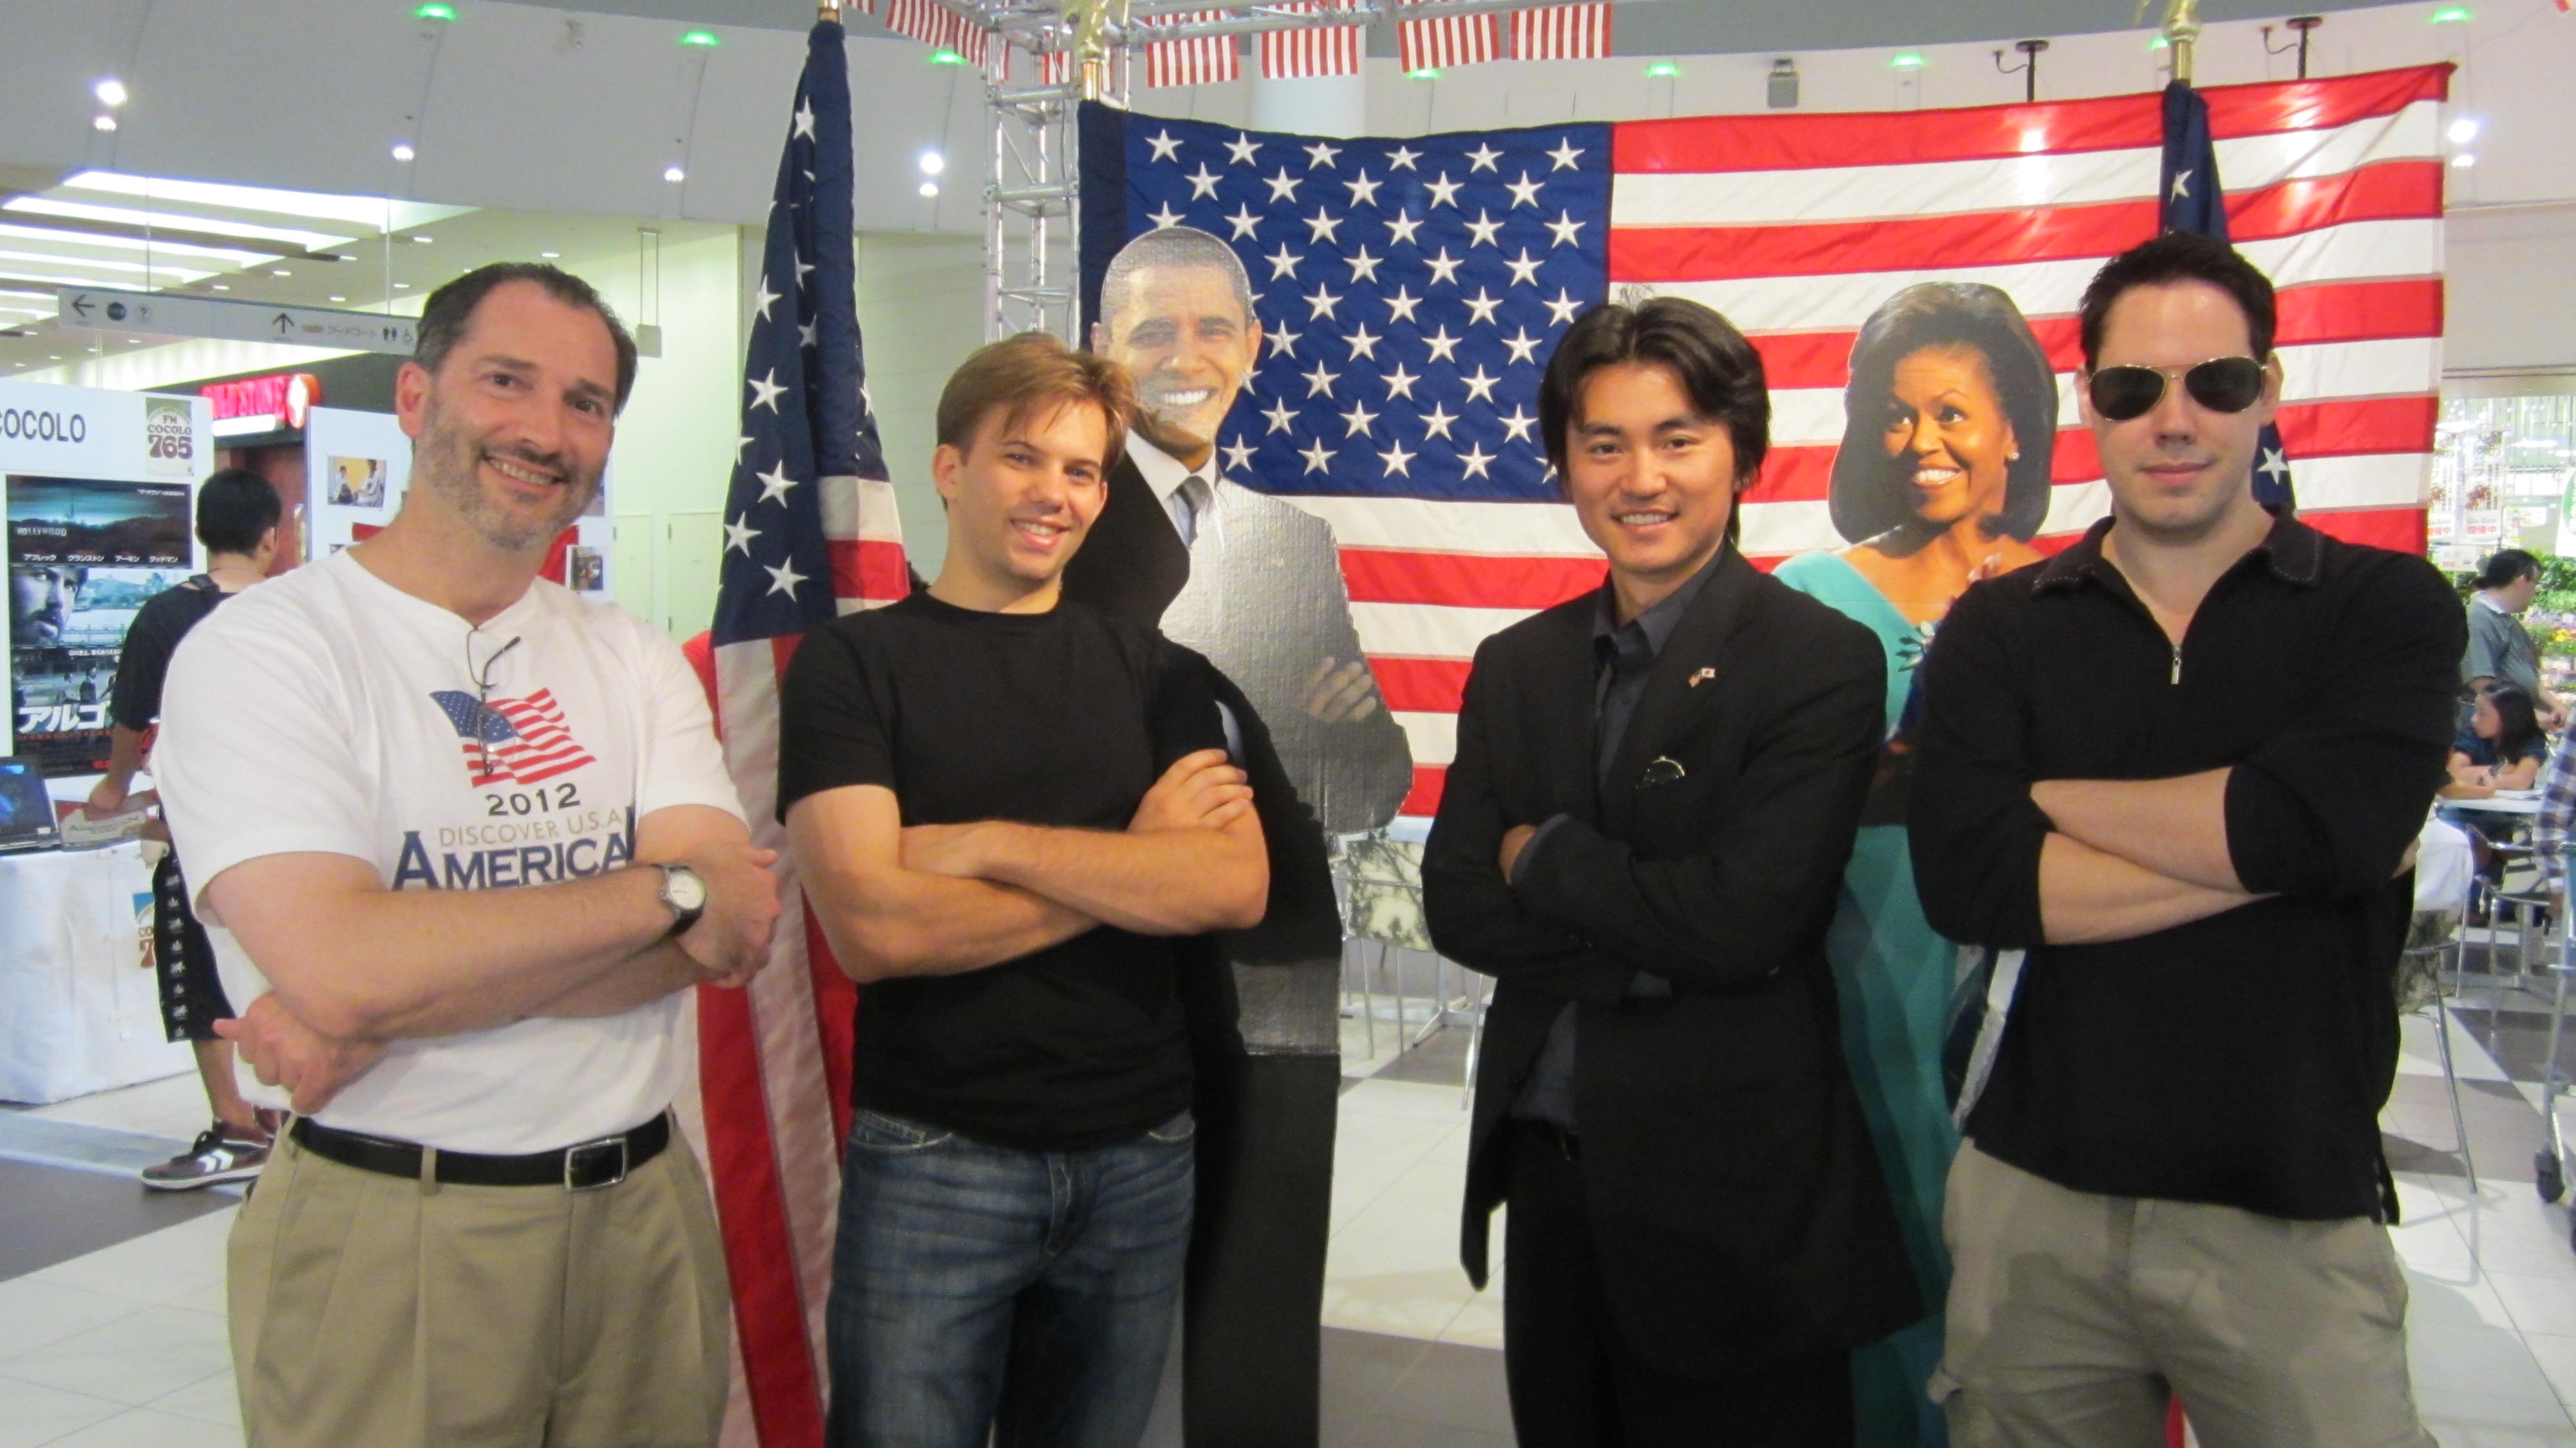 2012/9/29「Discover USA! American Day」